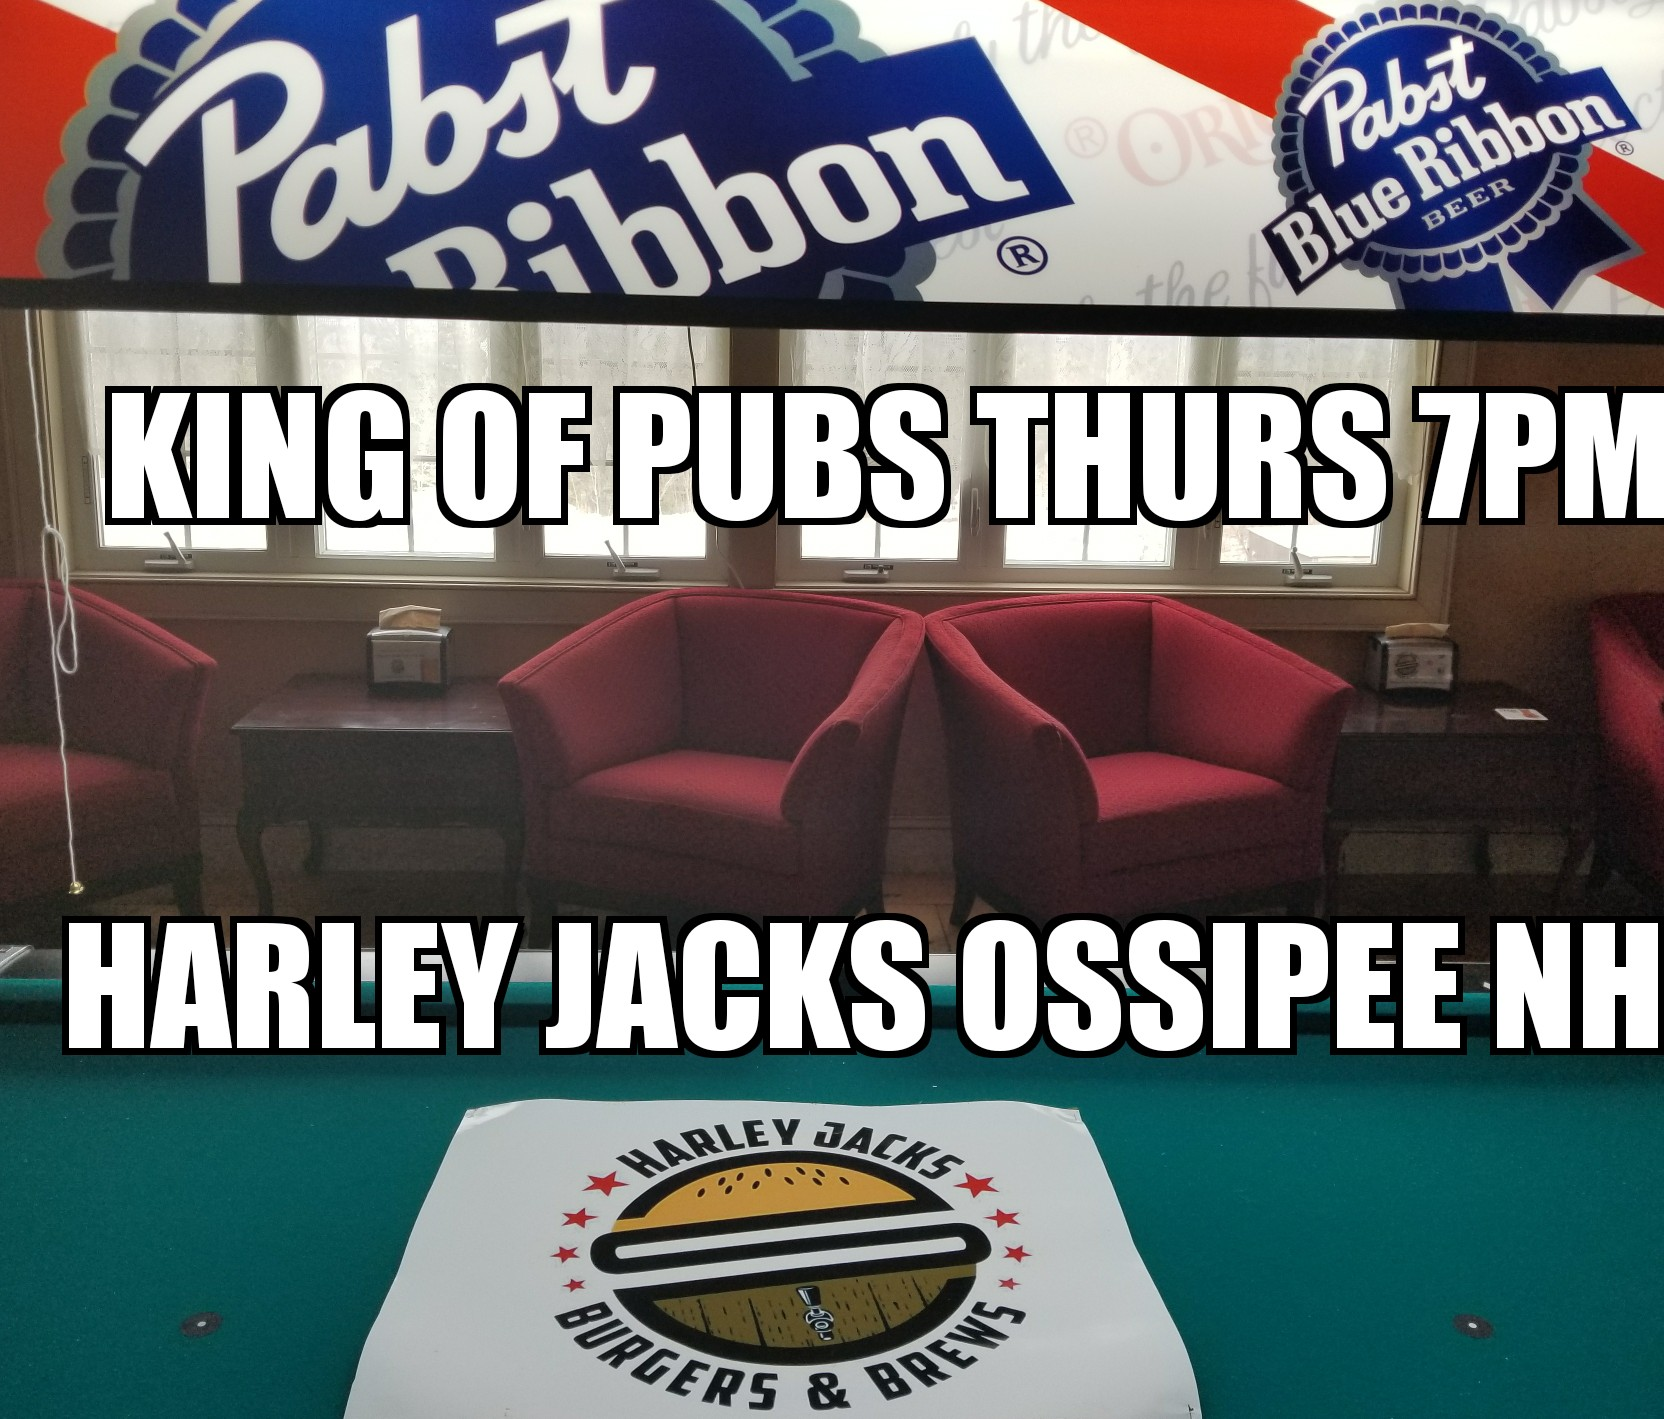 king of pubs thurs 7pm harley jacks ossipee nh